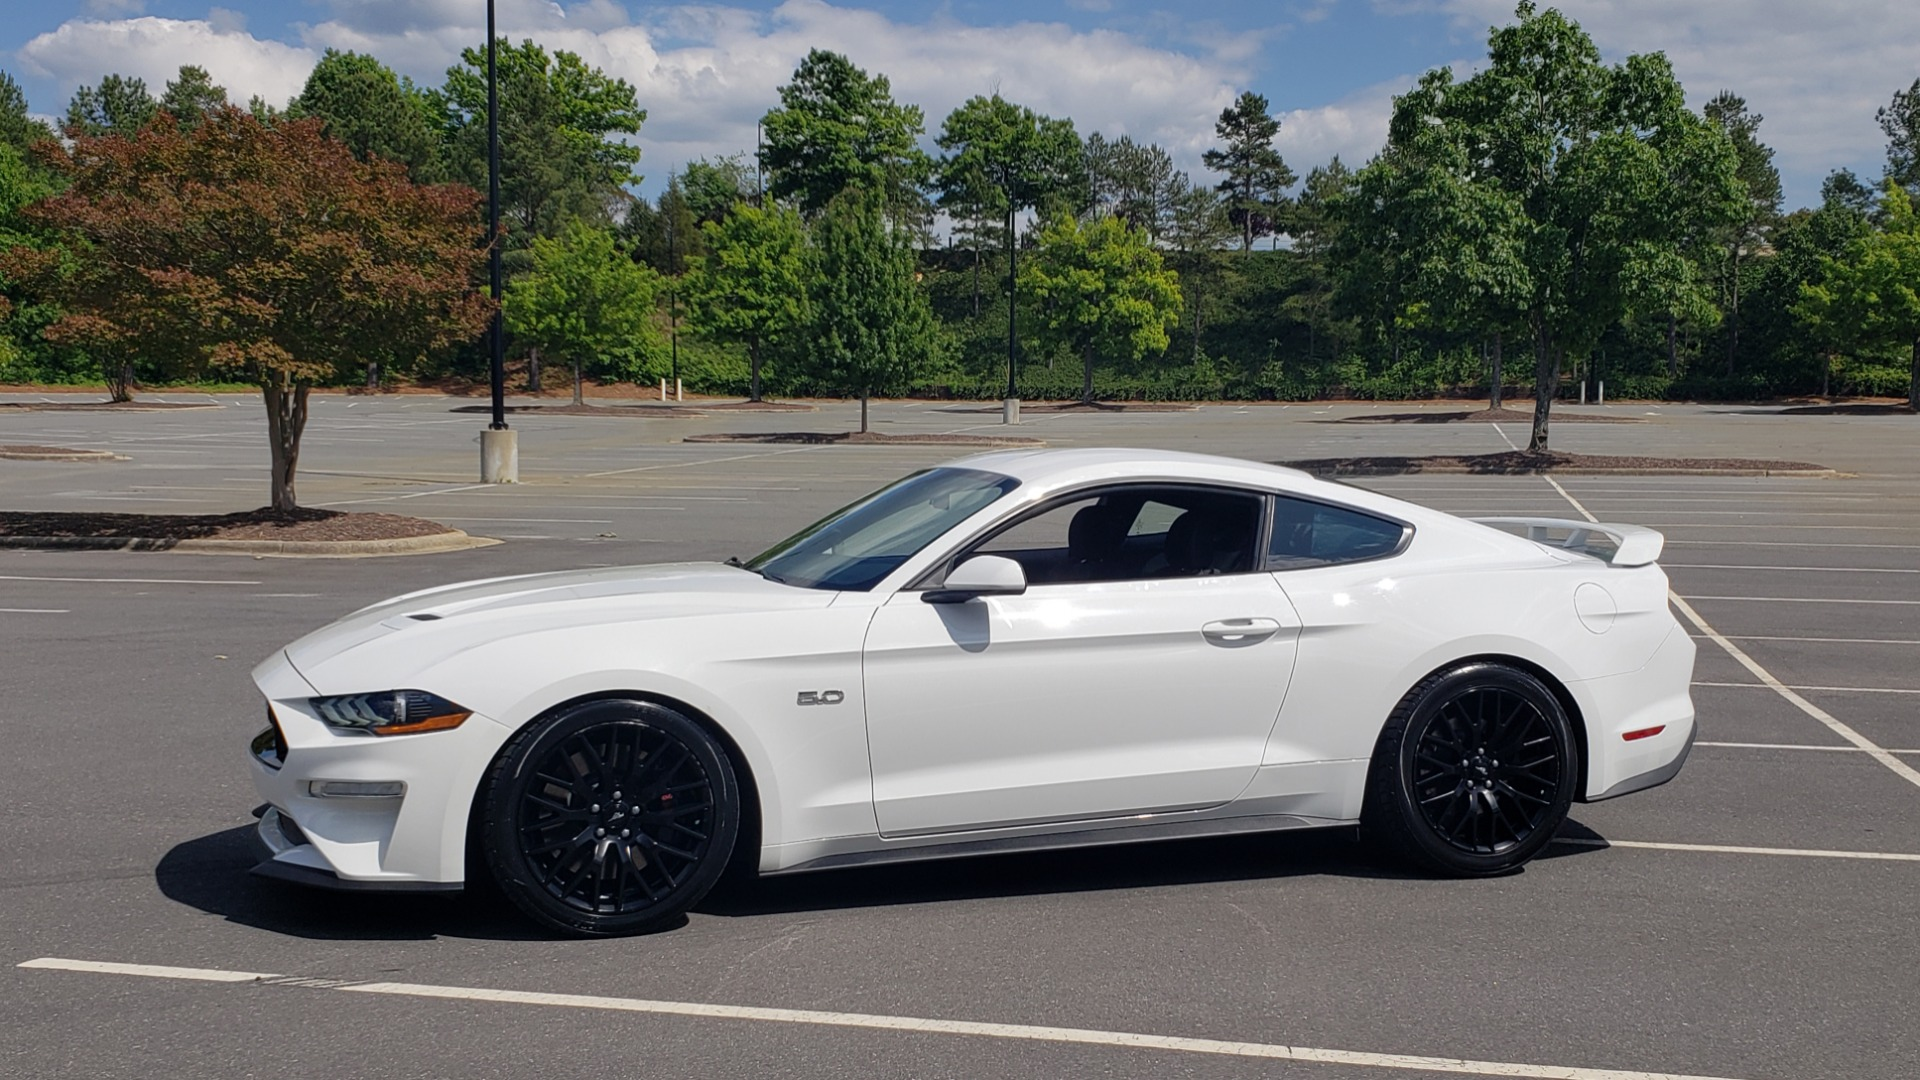 Used 2018 Ford MUSTANG GT COUPE / 5.0L V8 / AUTO / PERF PKG / REARVIEW / 19IN WHLS for sale Sold at Formula Imports in Charlotte NC 28227 79